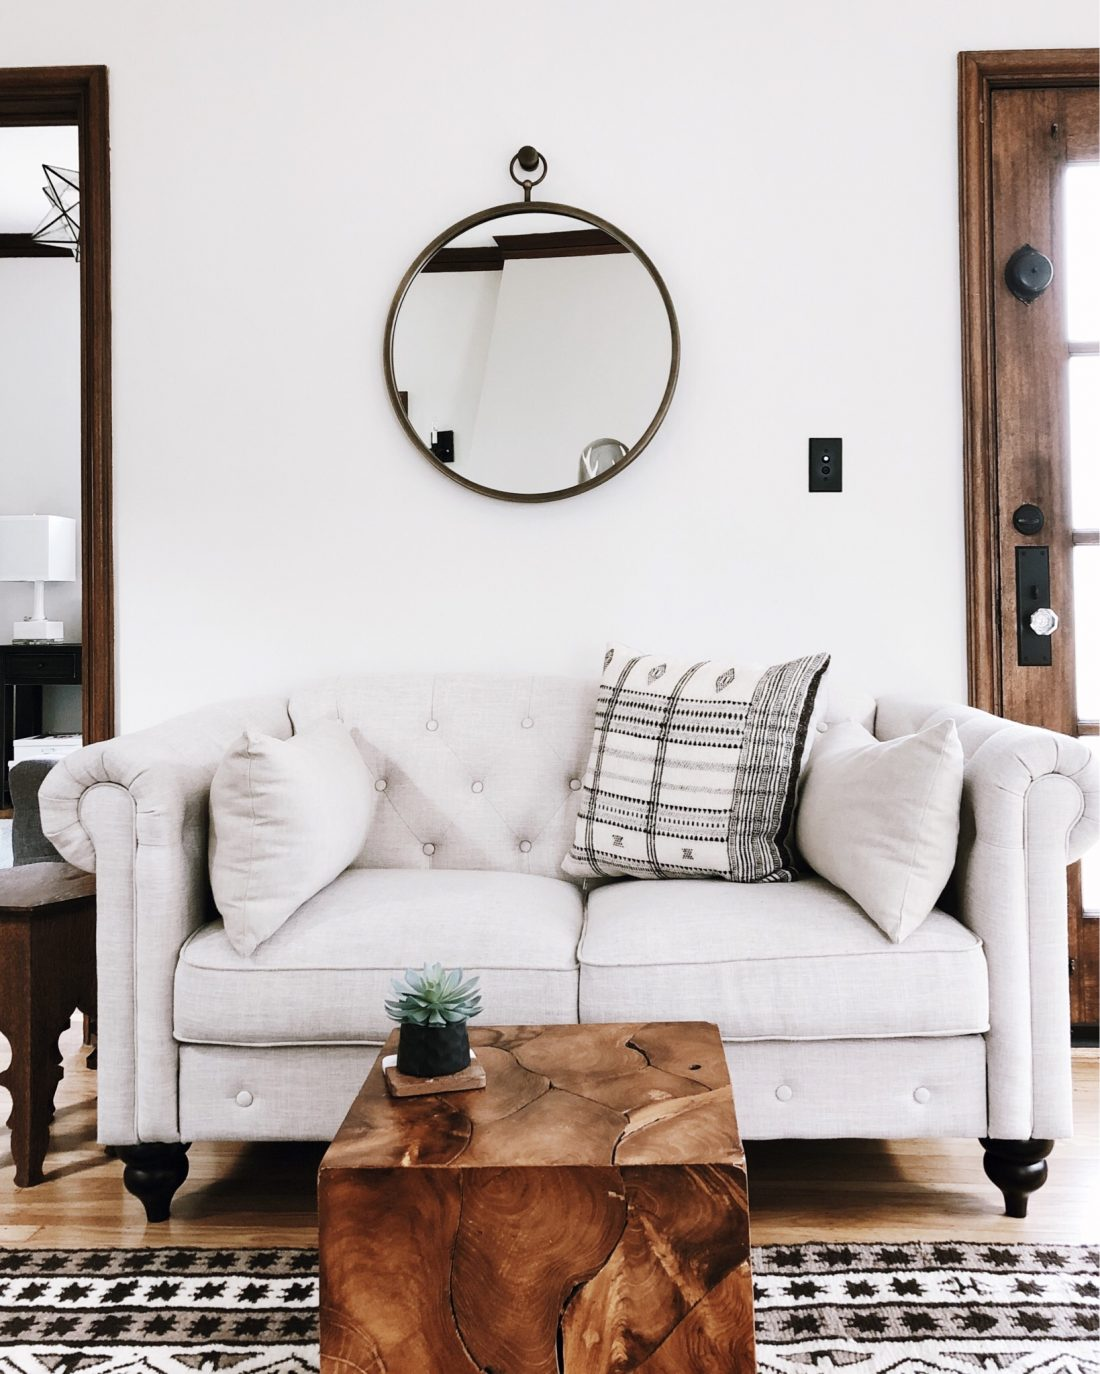 The best loveseats for any budget. Favorite chic loveseats to fit small spaces | copycatchic luxe living for less budget home decor, room designs, travel and living for less